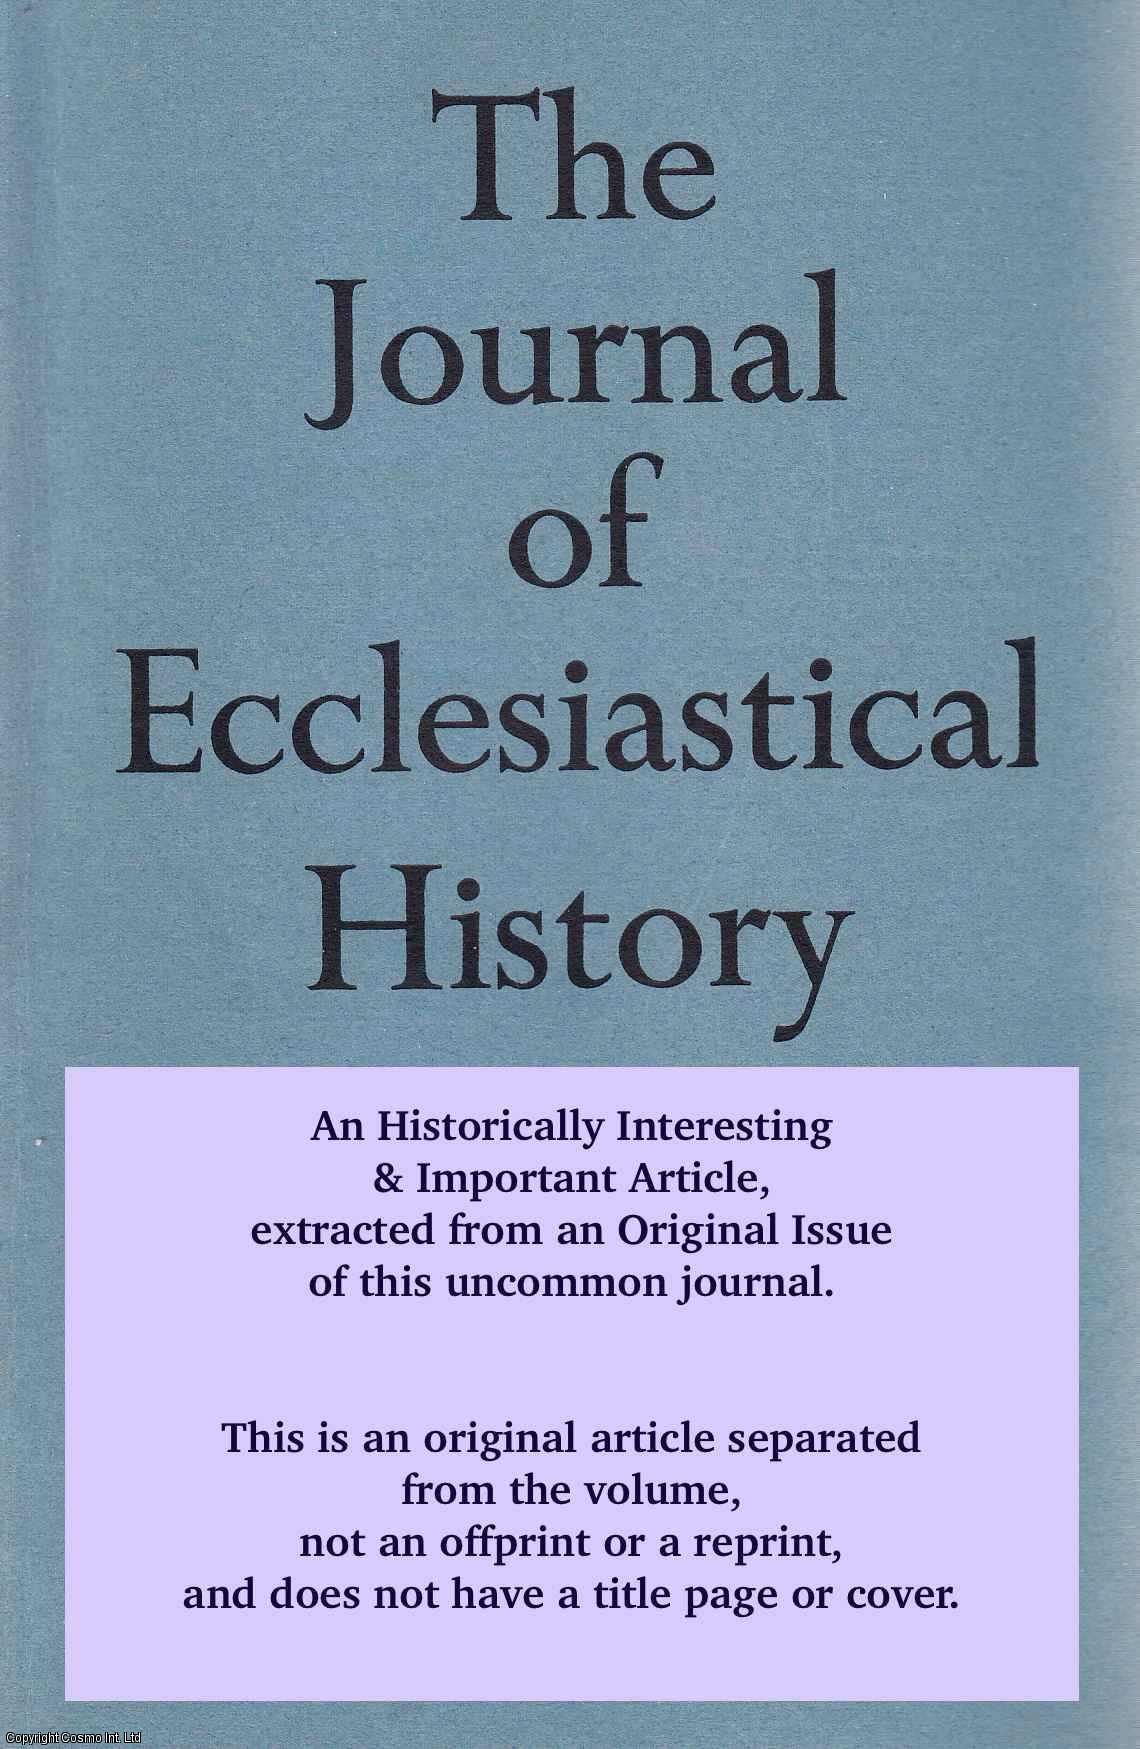 SCARISBRICK, J.J. - Clerical Taxation in England, 1485-1547. An original article from the The Journal of Ecclesiastical History 1960.